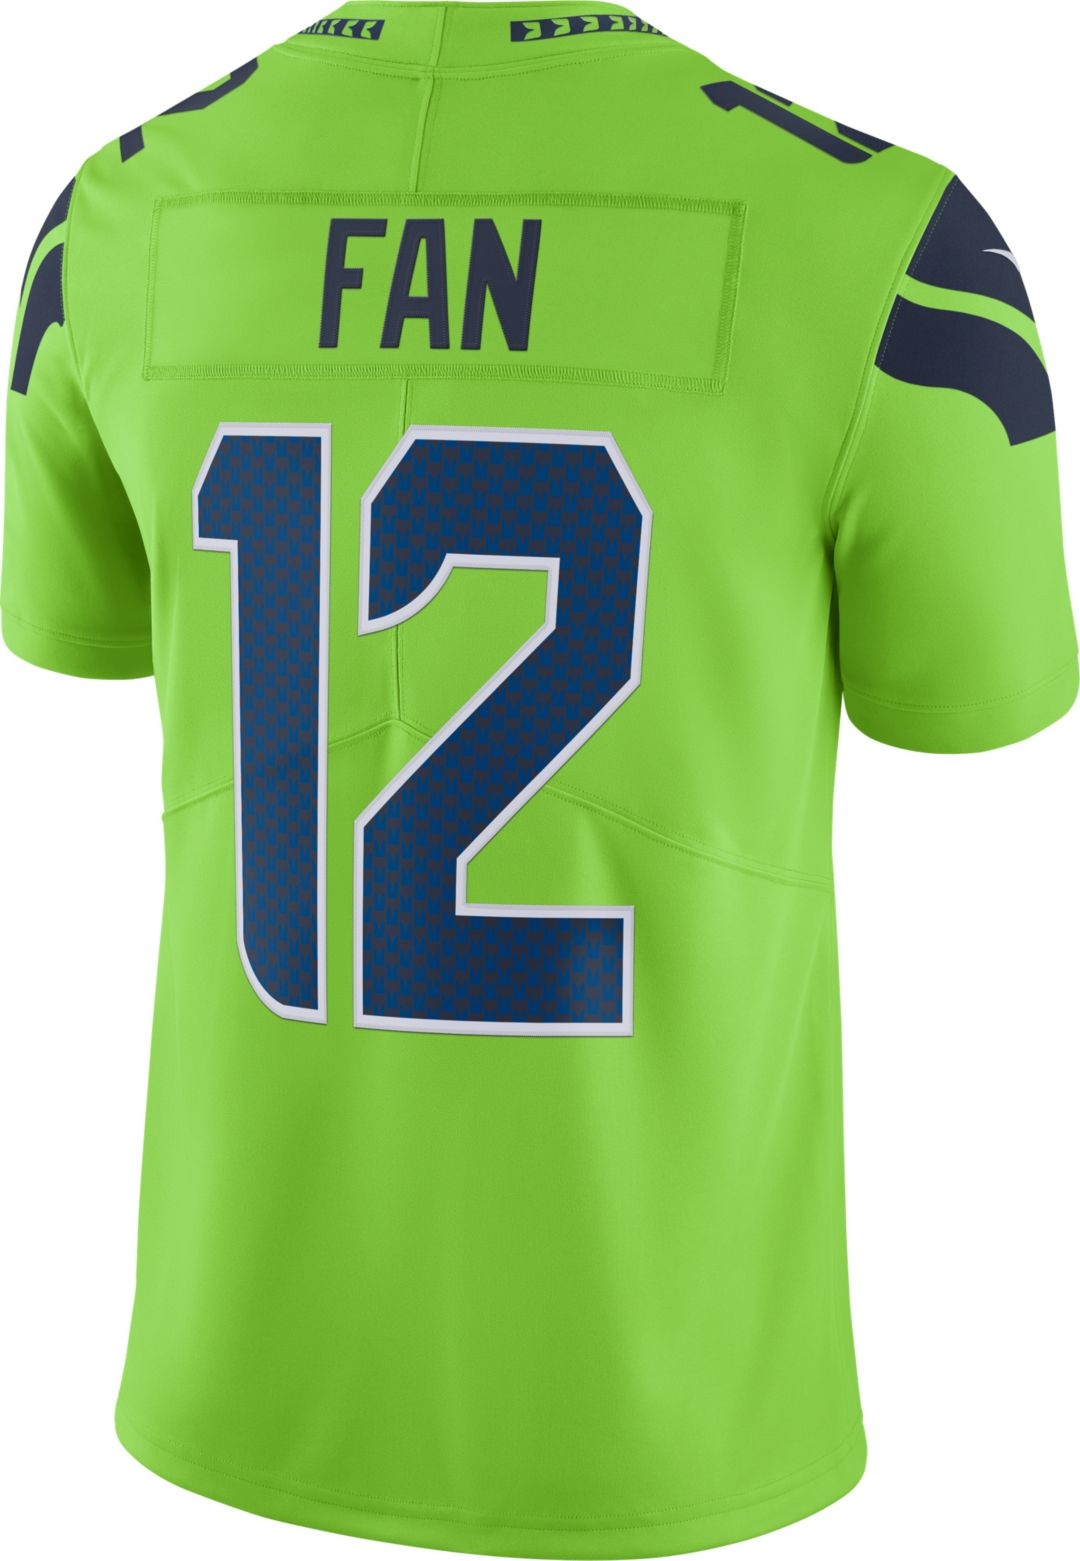 finest selection 7f6fb 985c1 Nike Men's Color Rush Limited Jersey Seattle Seahawks 12th Fan #12